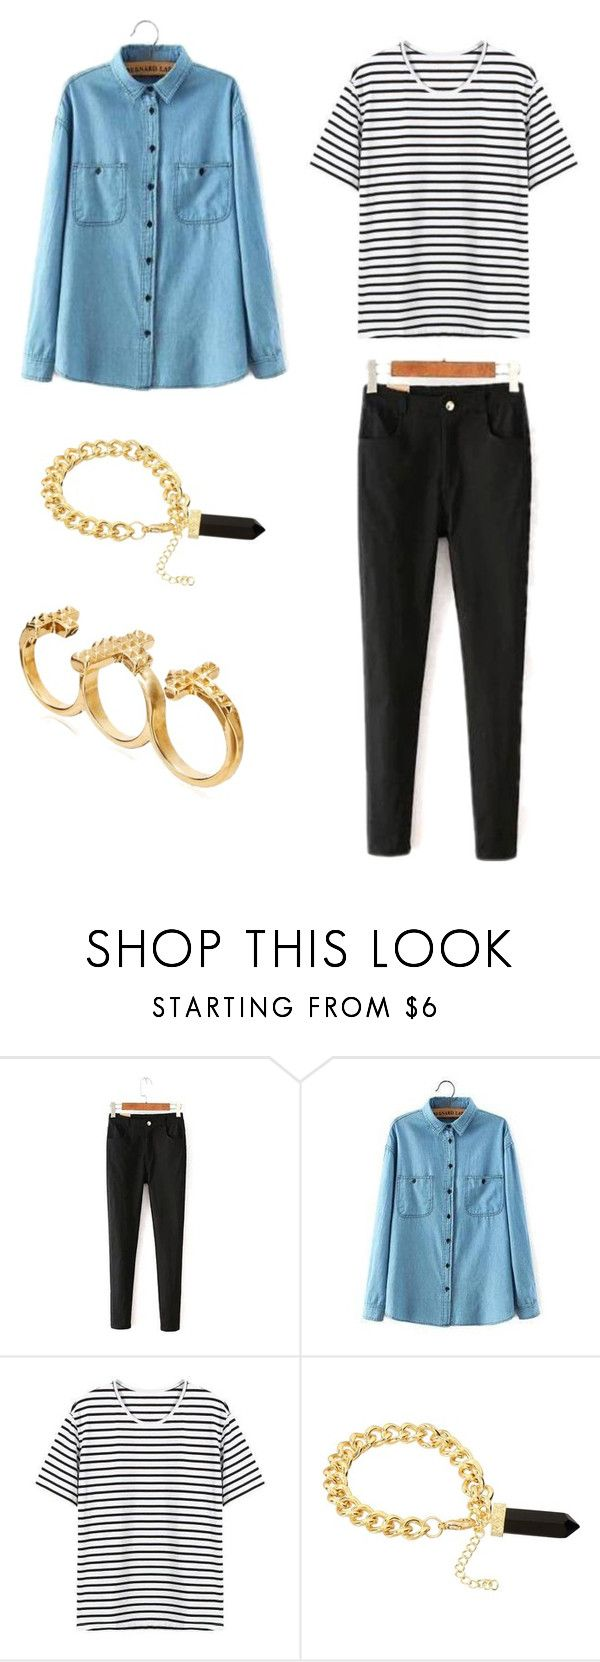 """Bez tytułu #2"" by nicole-cichopek on Polyvore featuring moda"